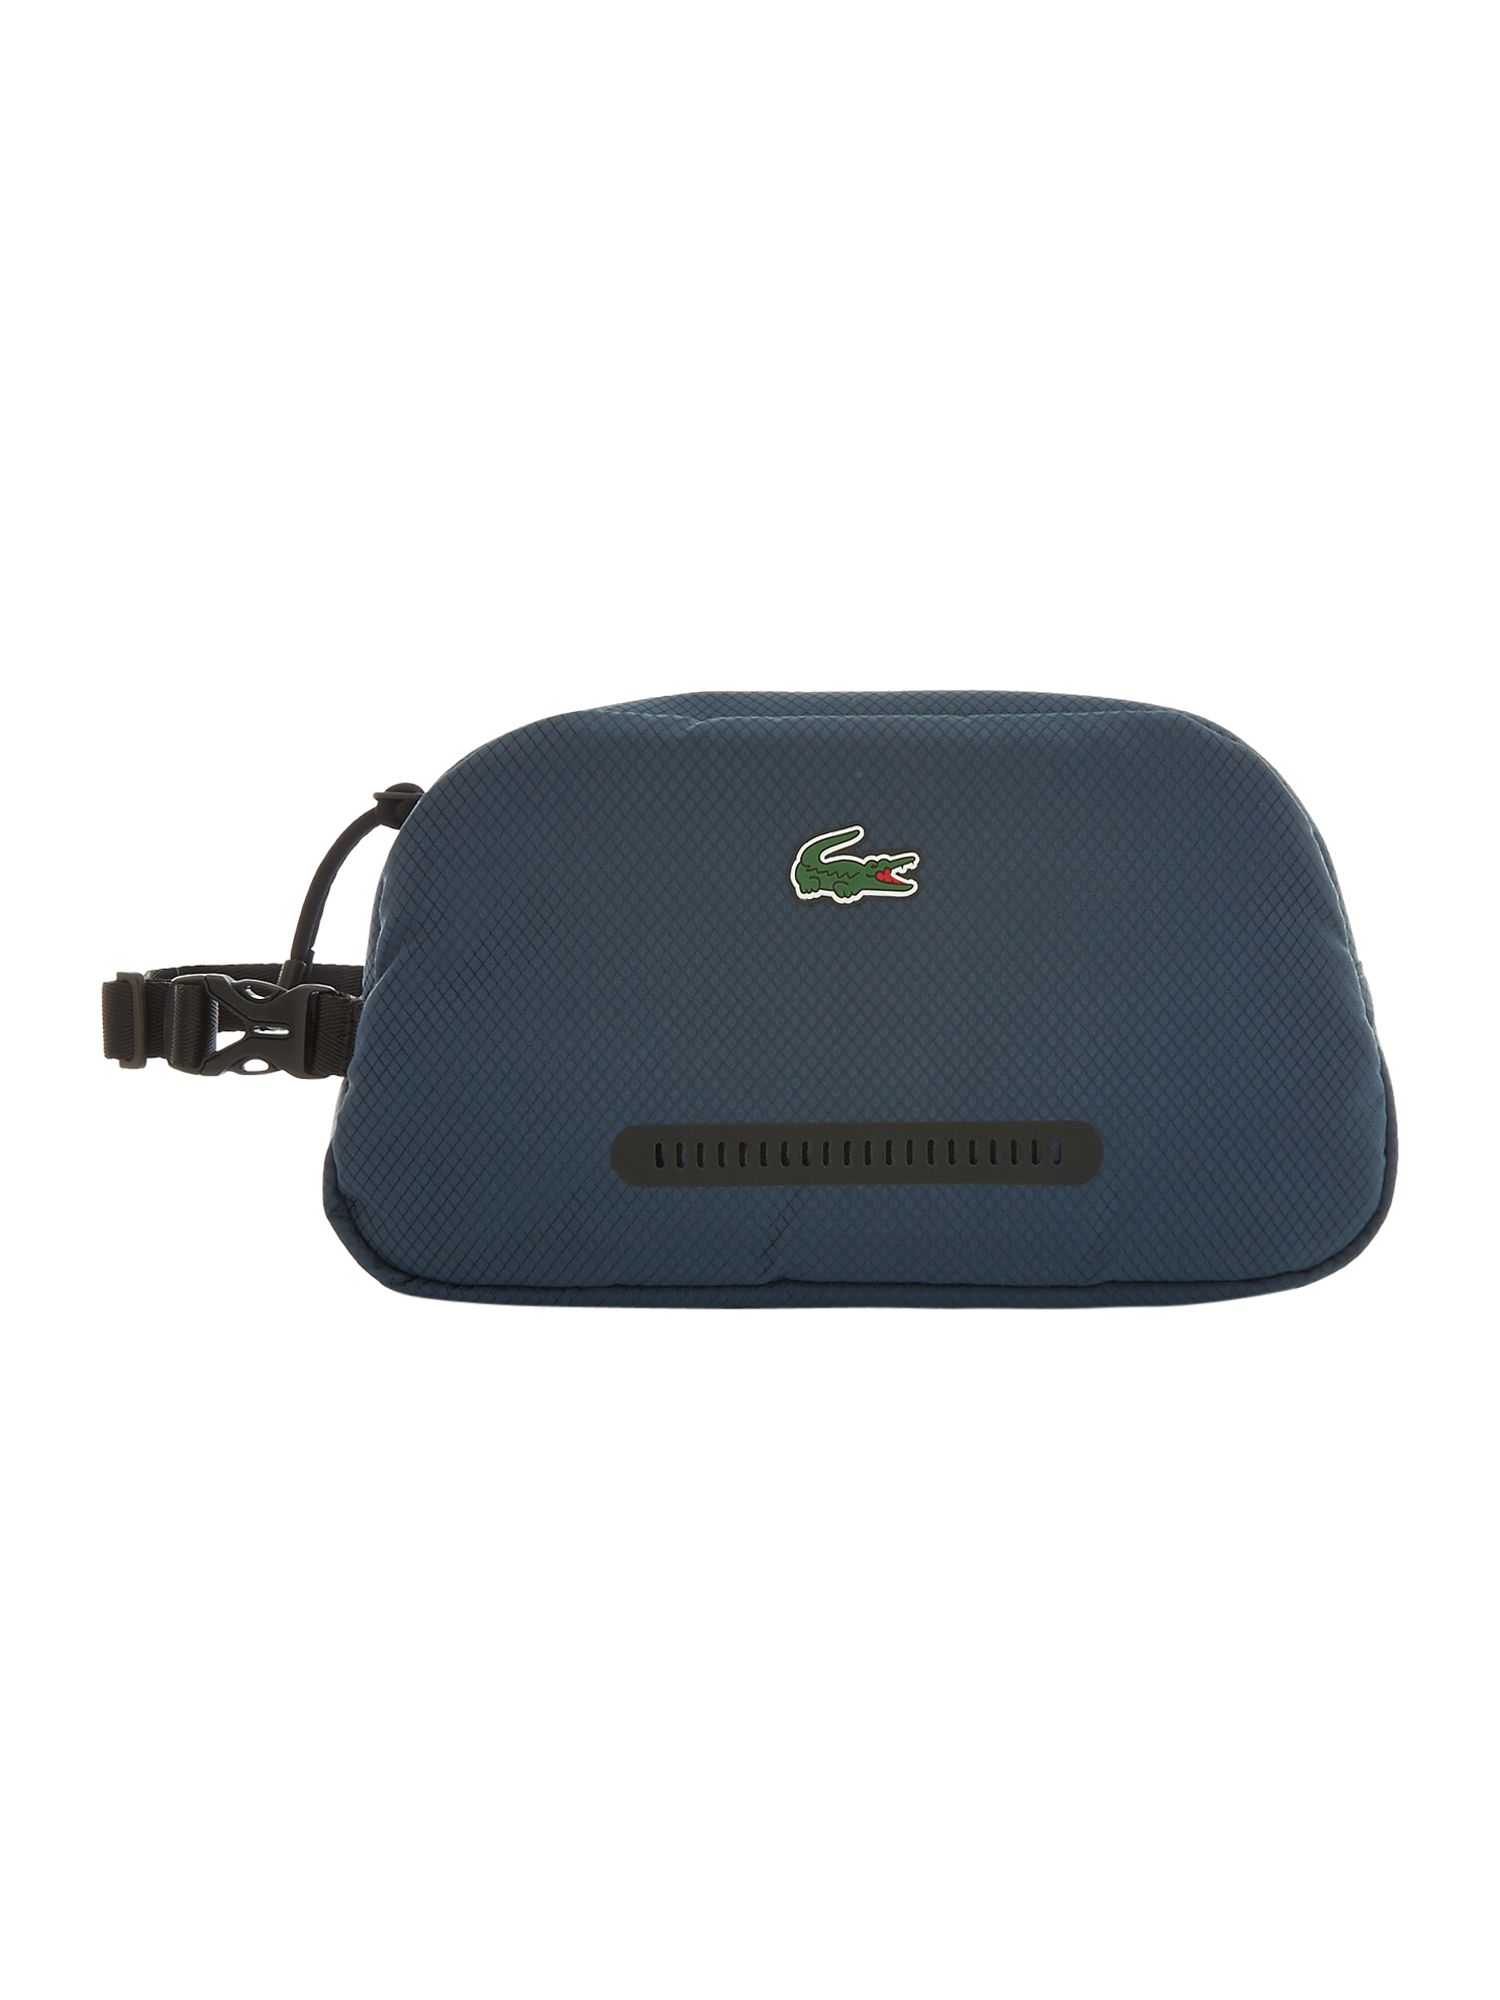 Lacoste Front Zip Small Washbag, Black